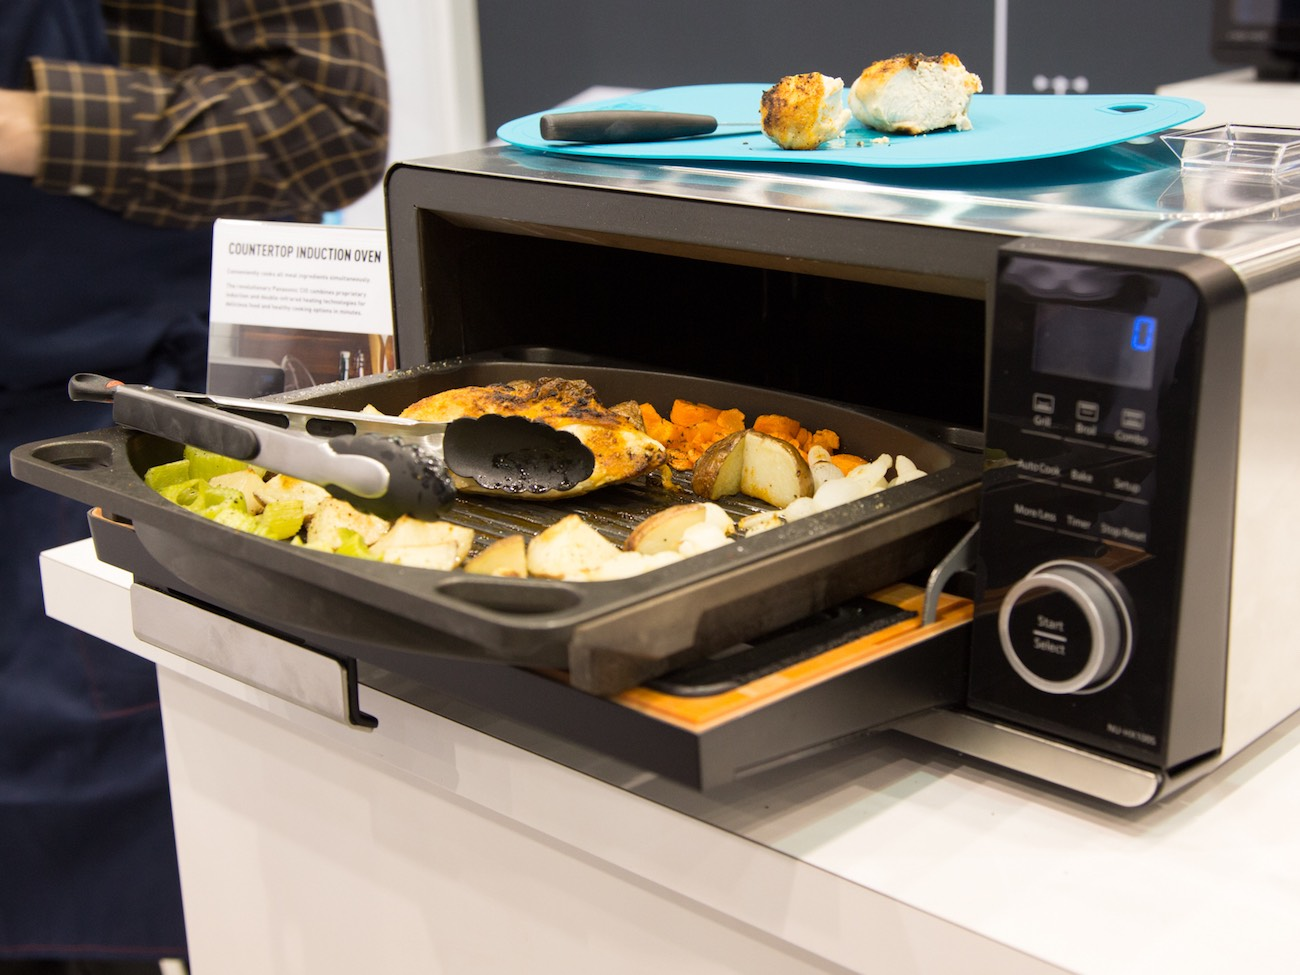 Panasonic Countertop Induction Oven 187 Gadget Flow